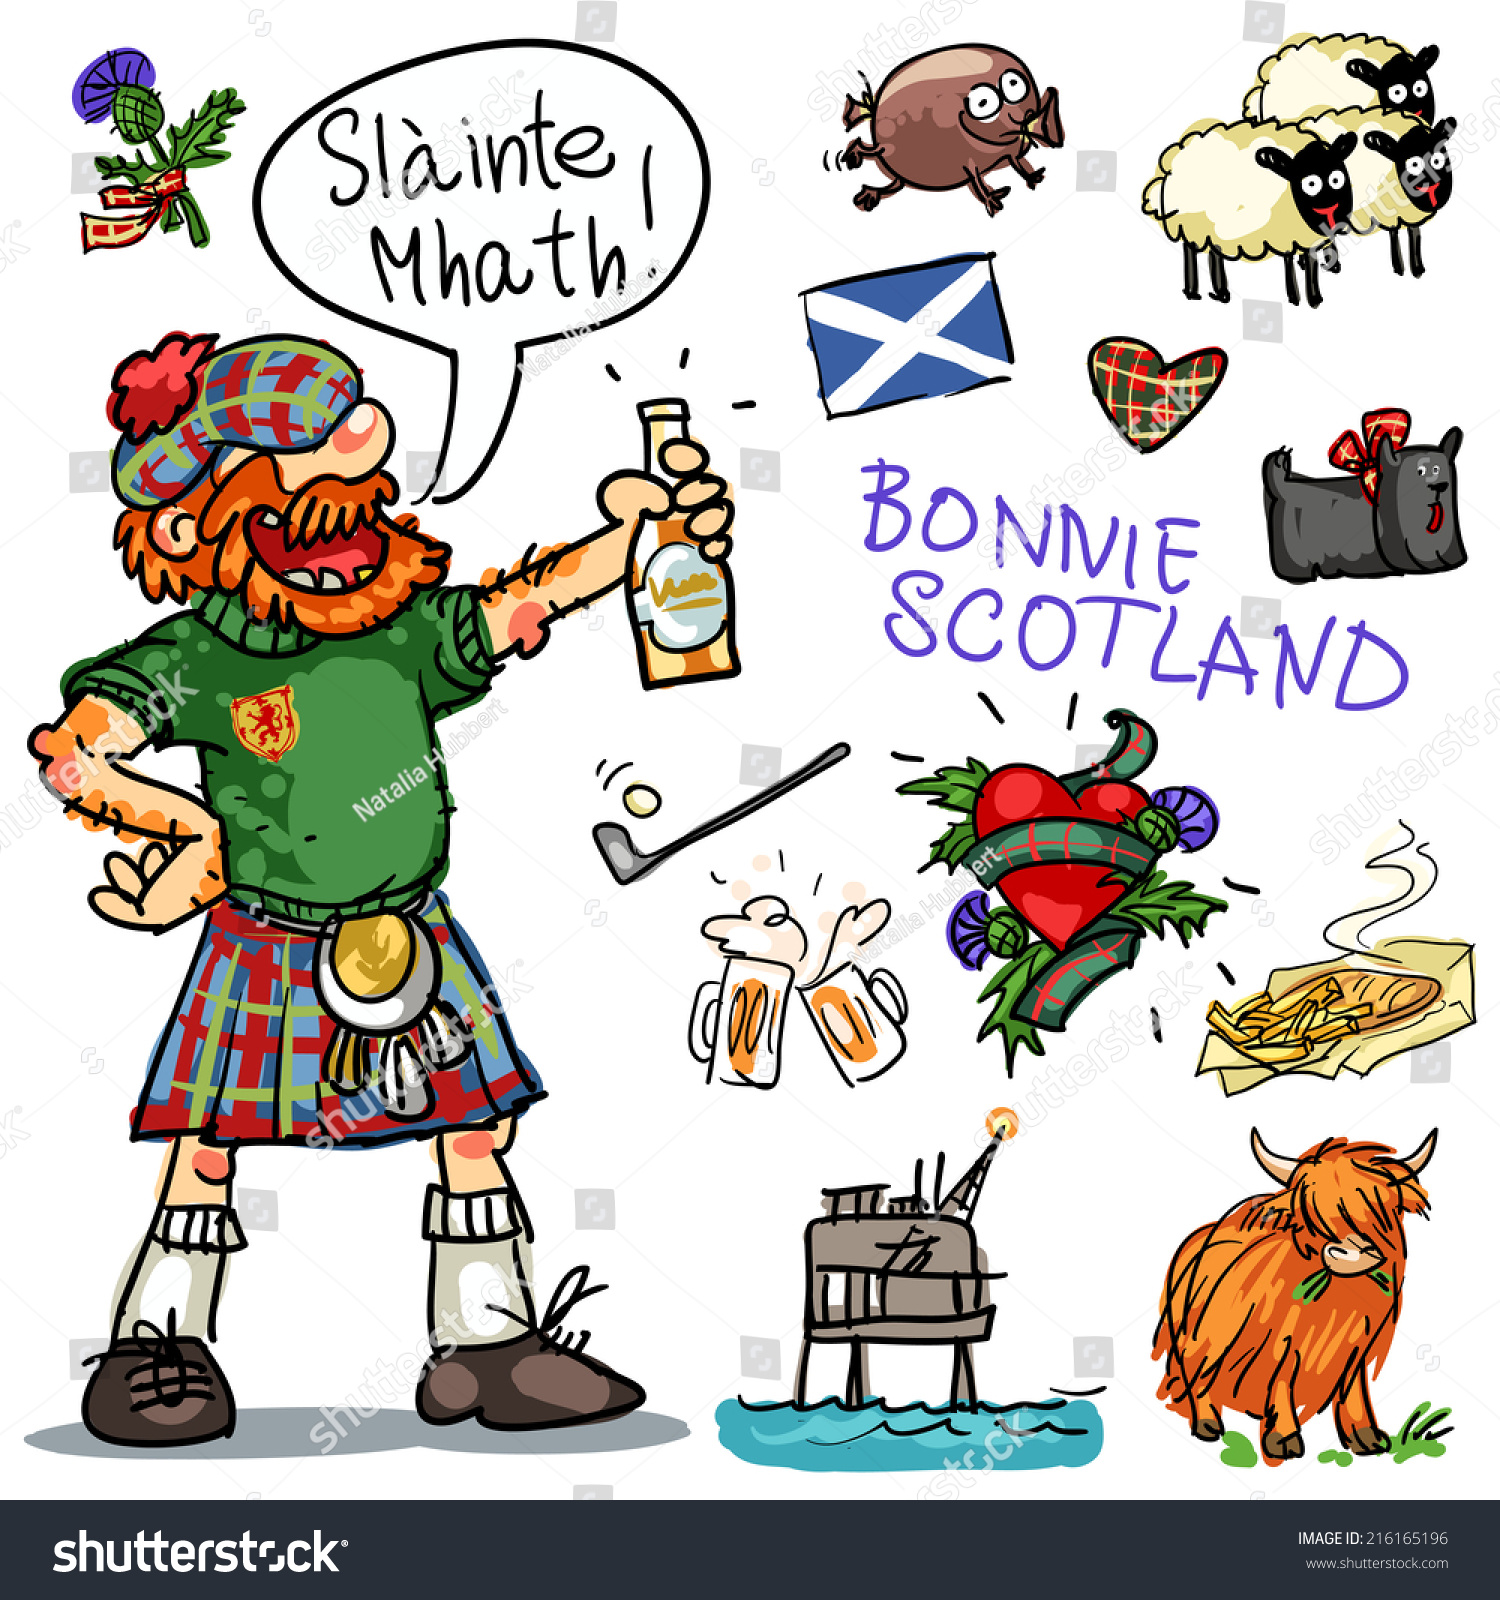 Royalty Free Bonnie Scotland Cartoon Collection